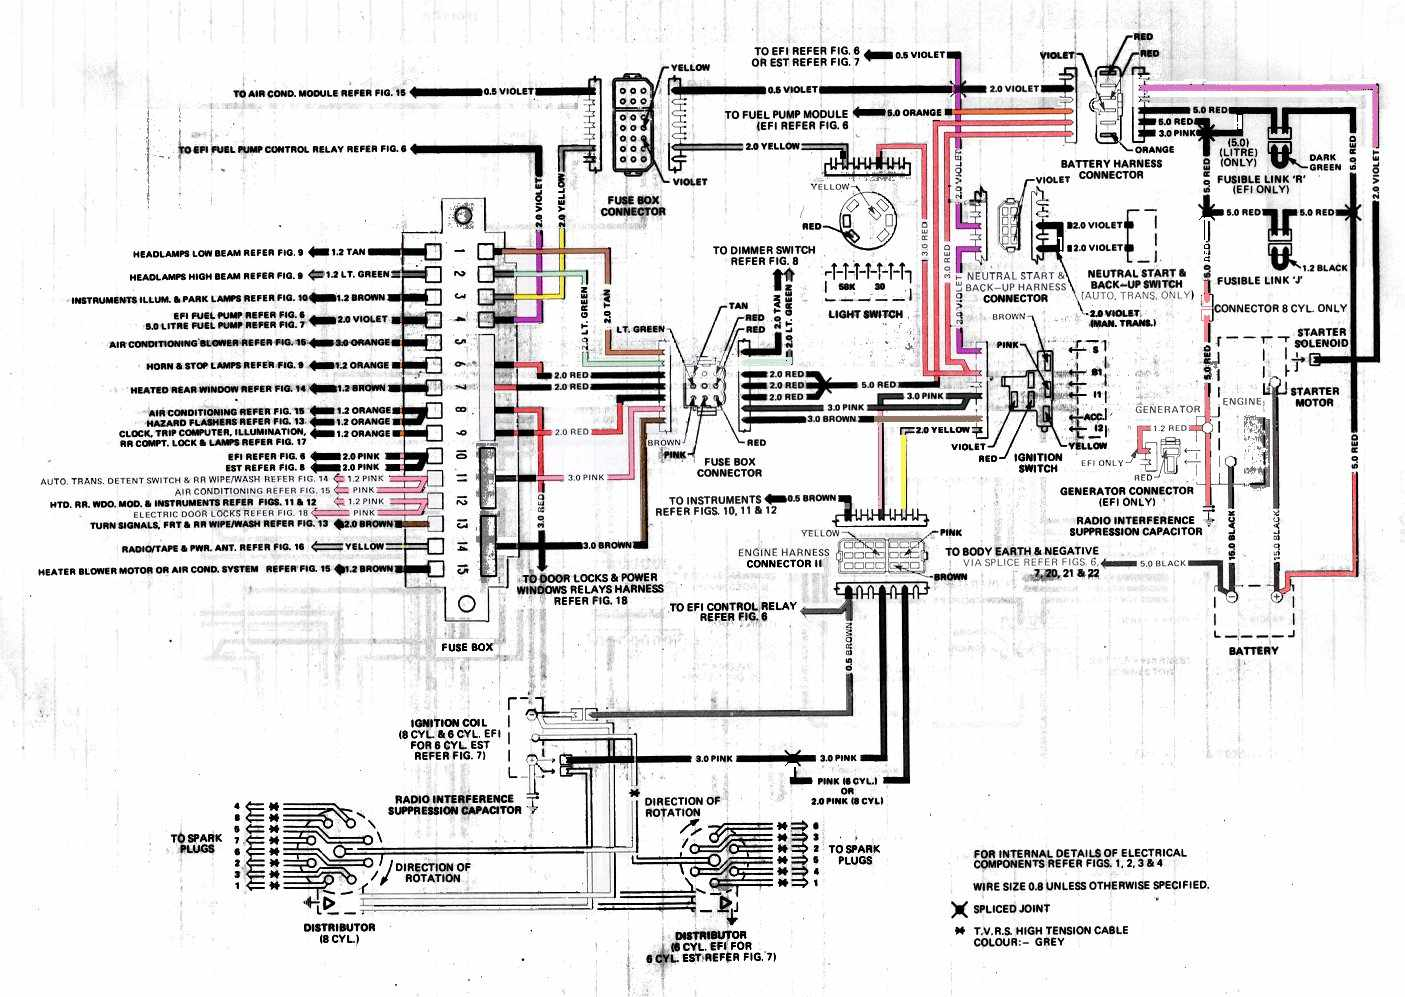 Wiring diagrams maker the wiring diagram readingrat wiring diagrams maker the wiring diagram wiring diagram ccuart